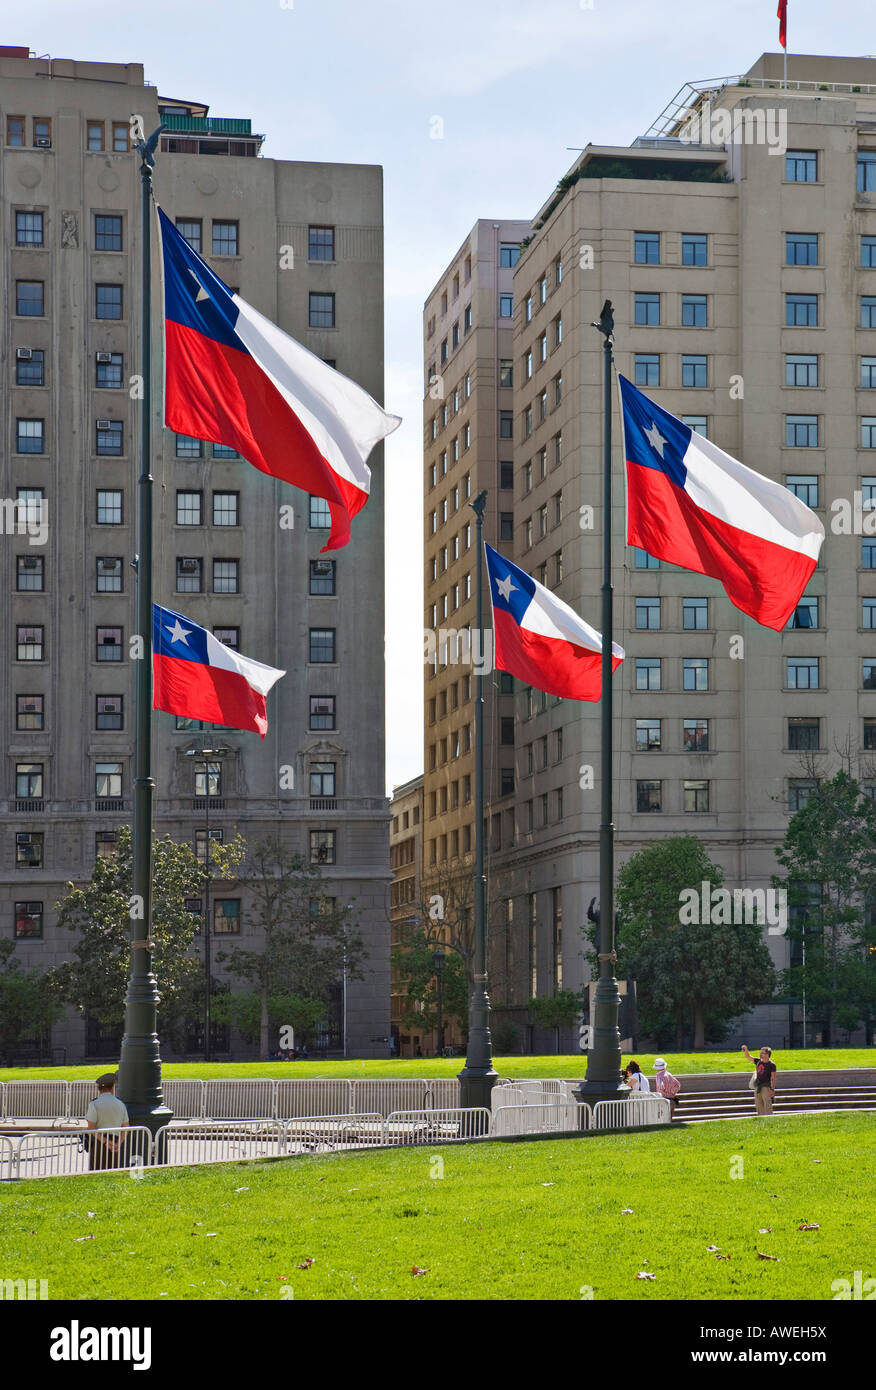 Chilean flags in front of high-rise buildings, Santiago de Chile, Chile, South America - Stock Image